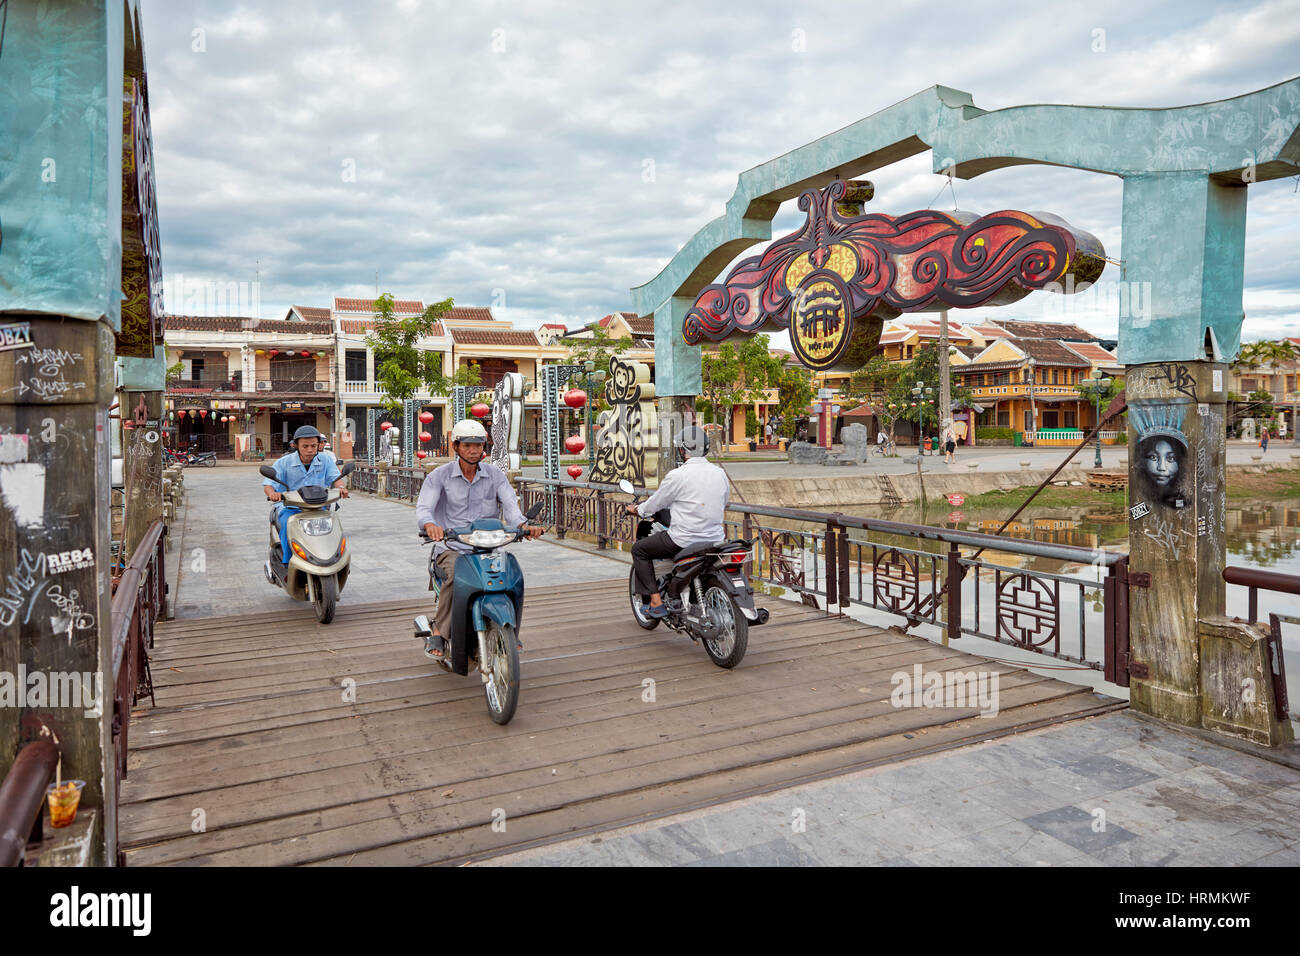 Cau An Hoi Bridge. Hoi An Ancient Town, Quang Nam Province, Vietnam. - Stock Image